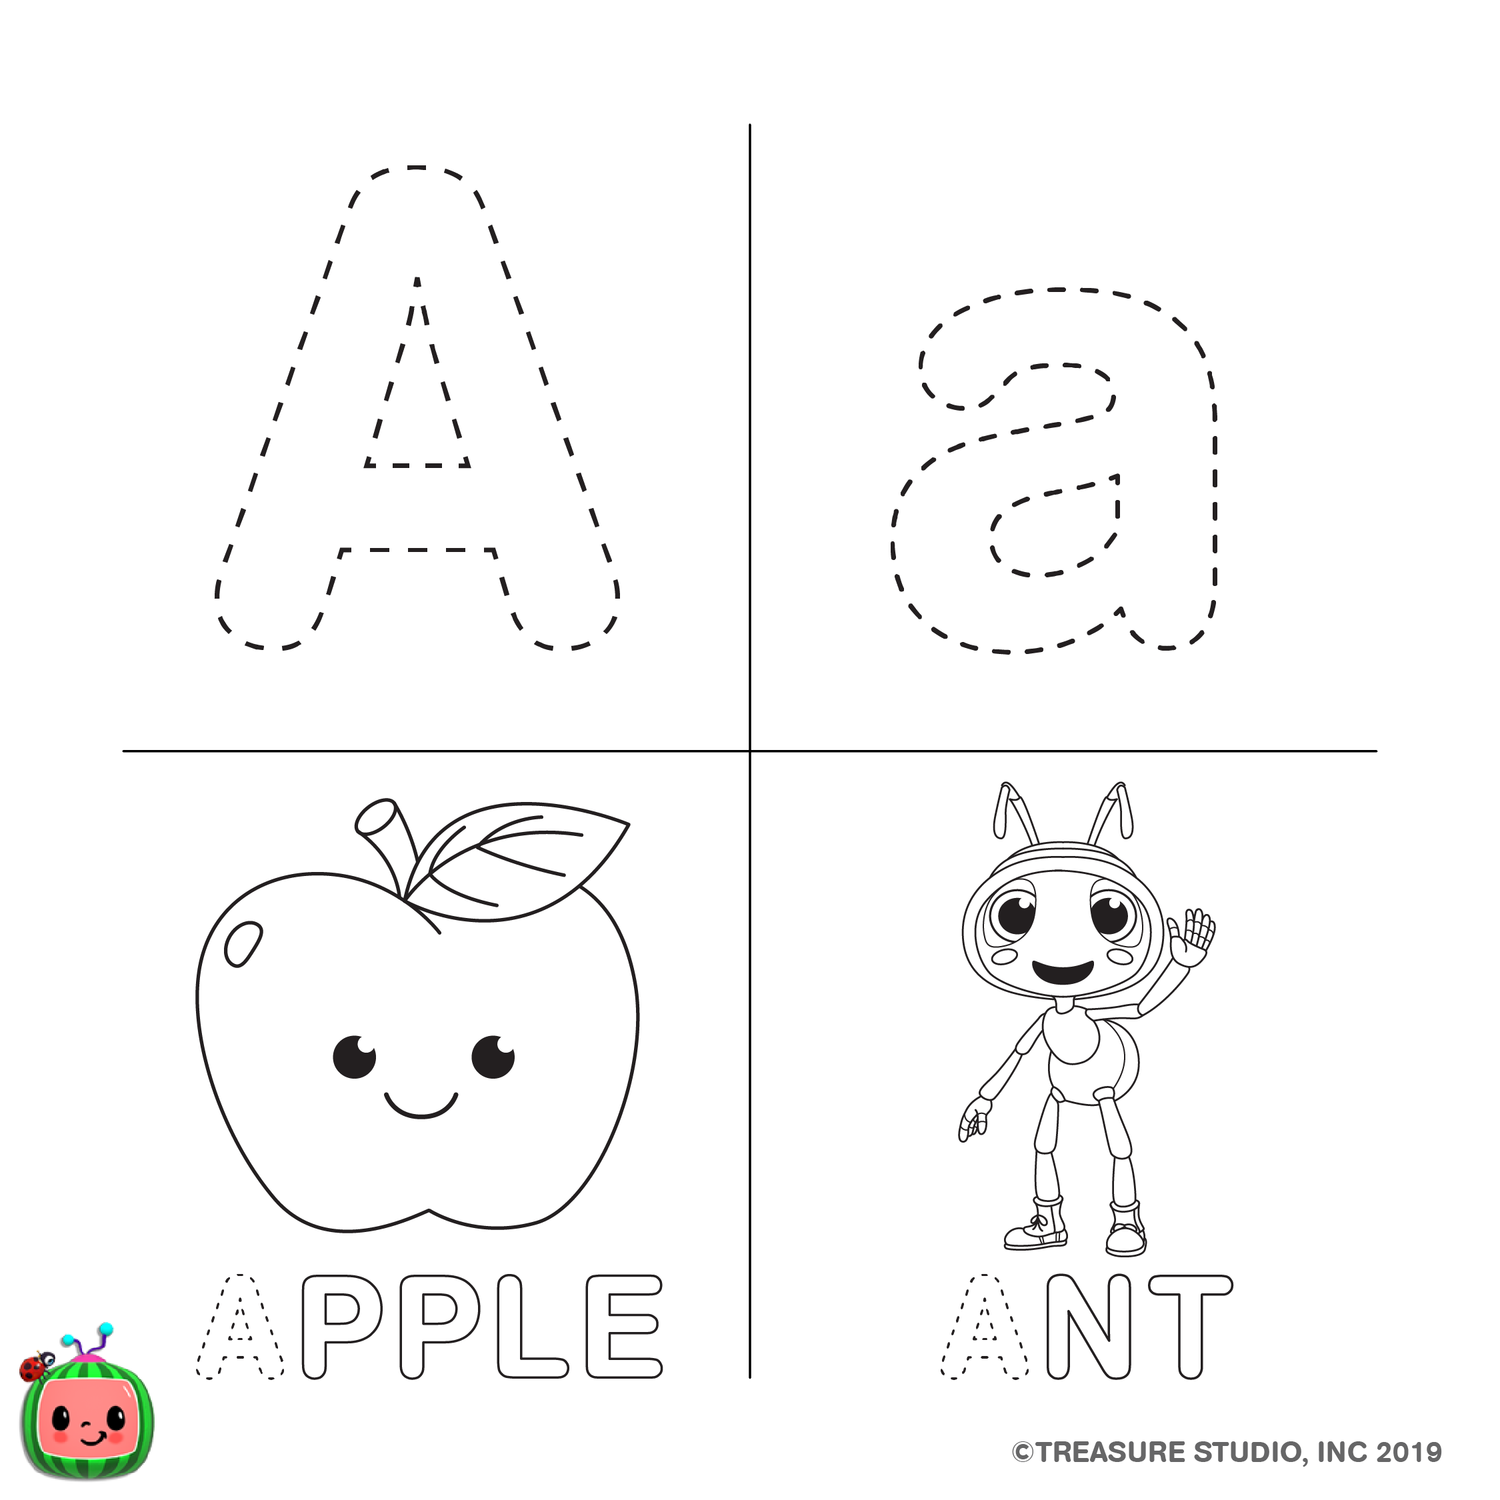 Abc Coloring Pages Cocomelon Com In 2020 Abc Coloring Abc Coloring Pages Alphabet Coloring Pages